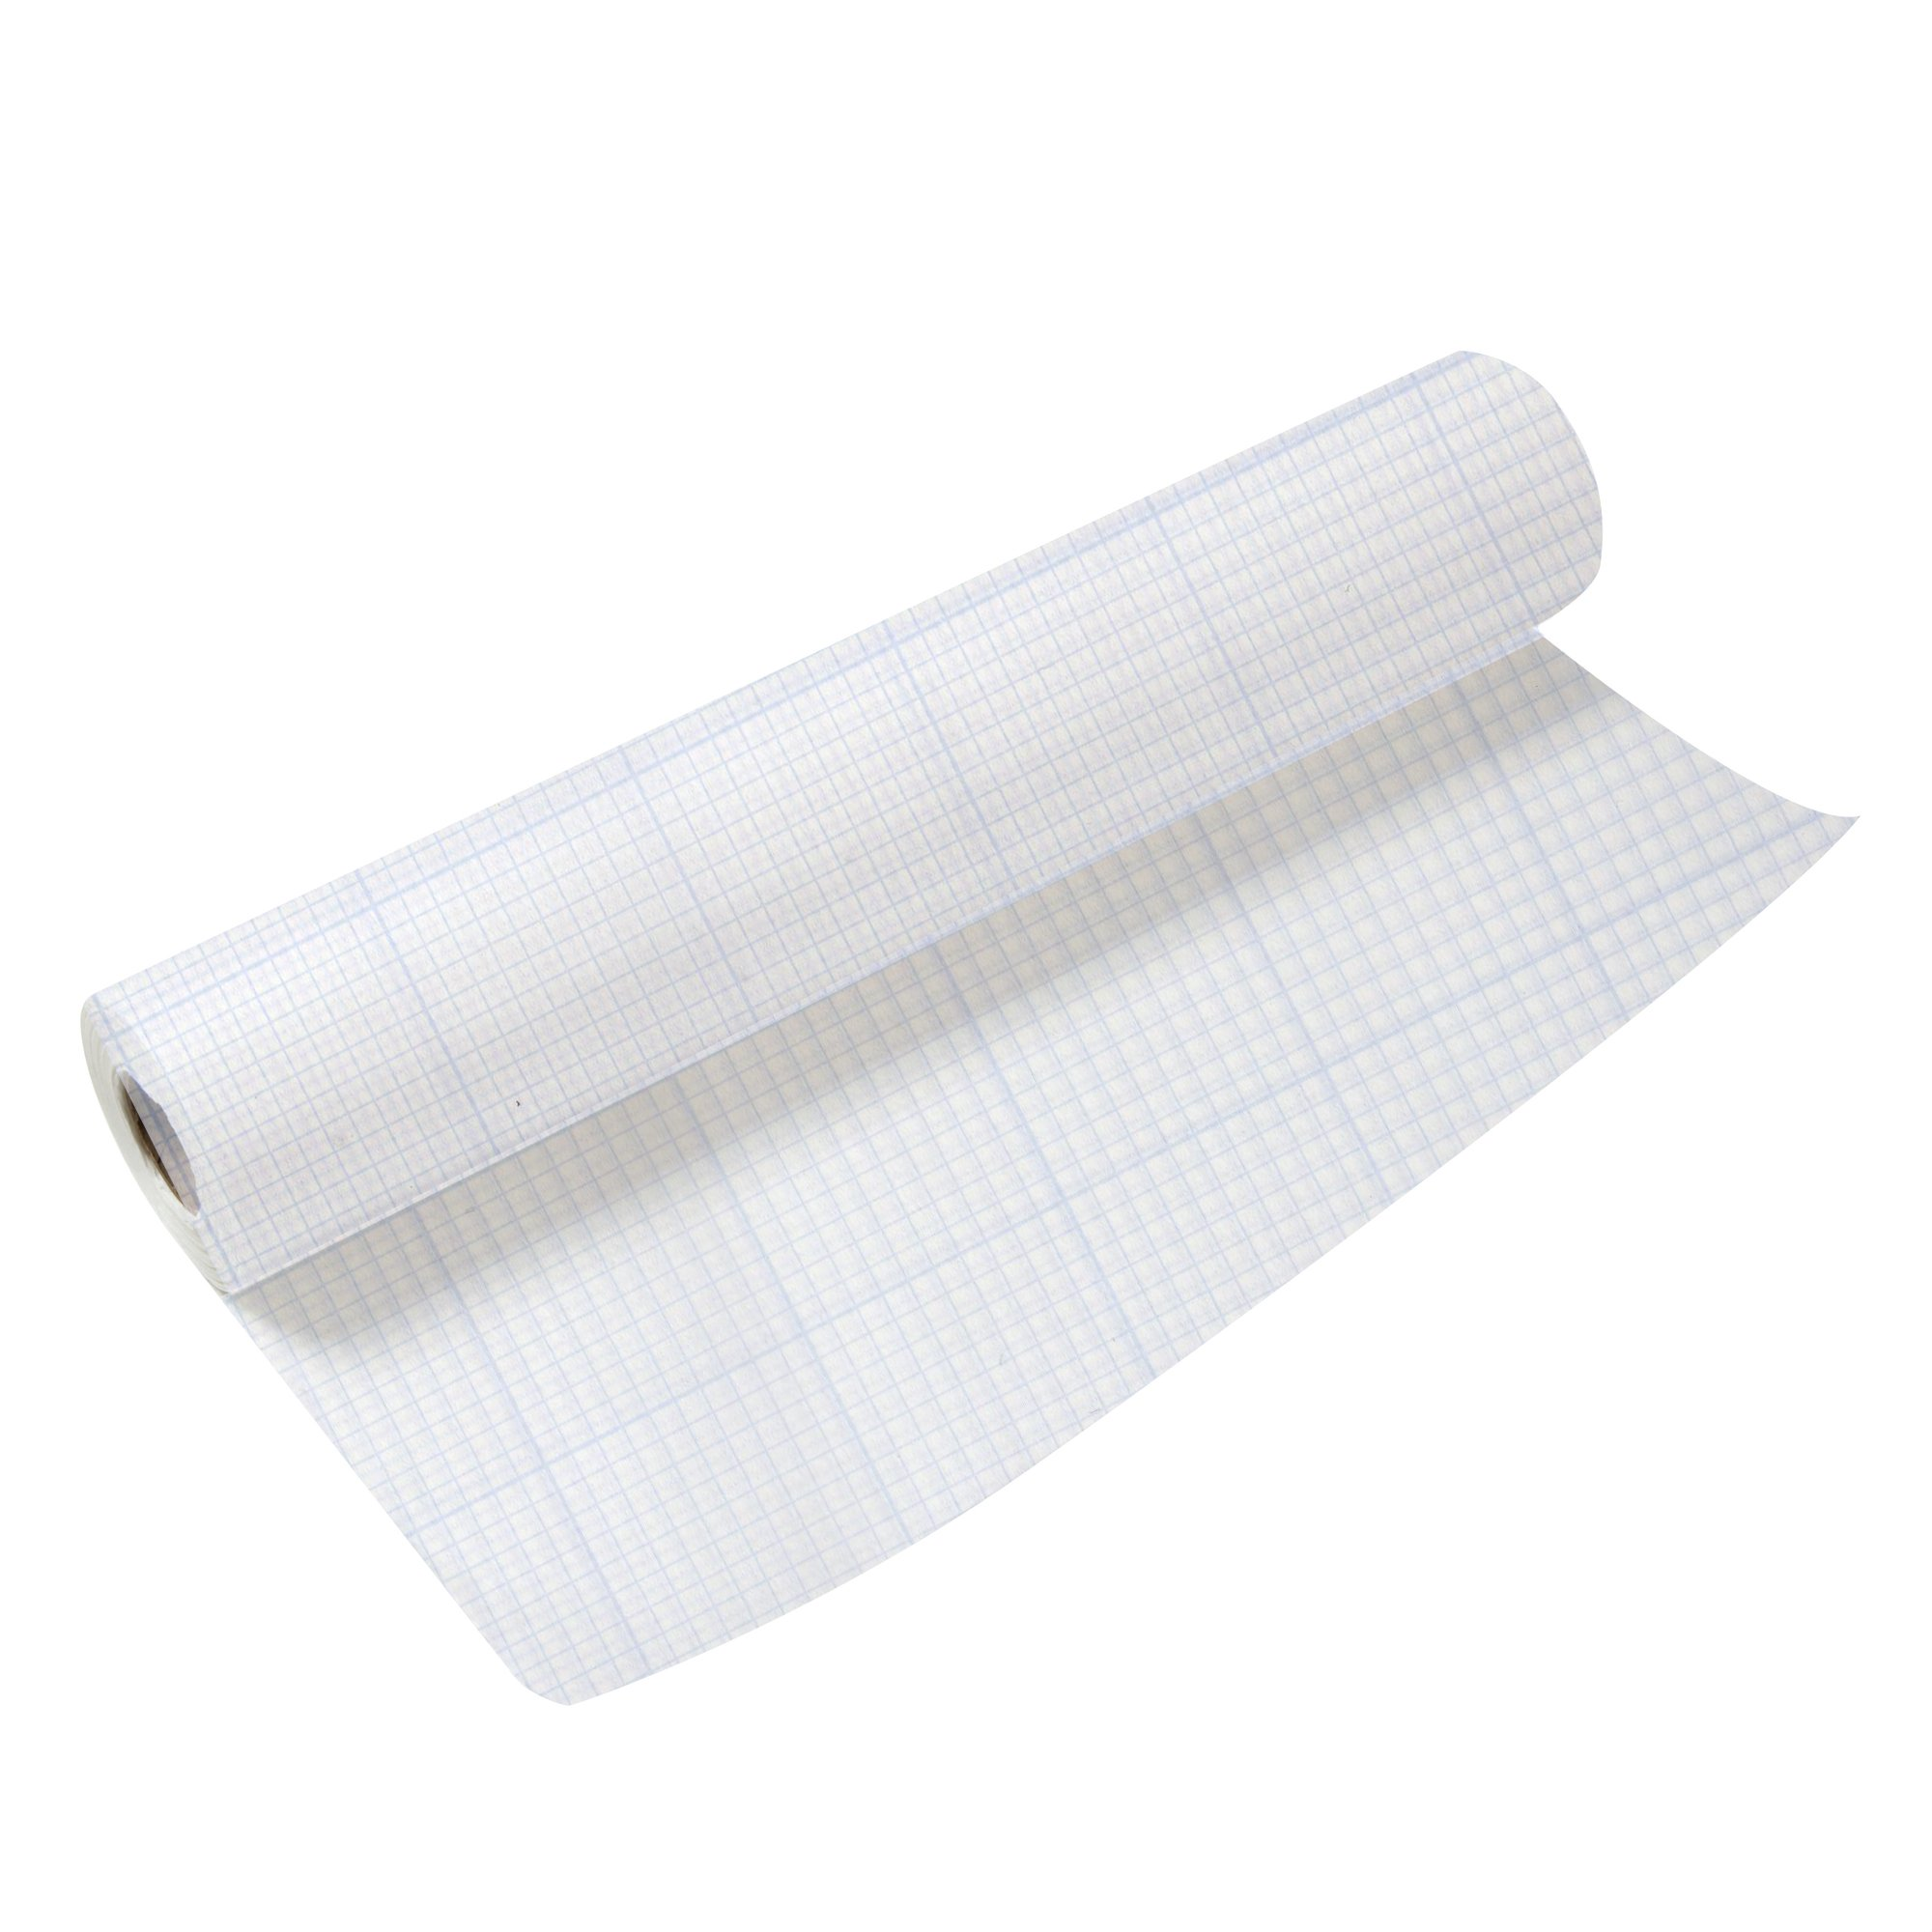 Archival Quality Vellum Manual Drafting Paper (36 Inch X 20 Yards) by Clearprint by Clearprint